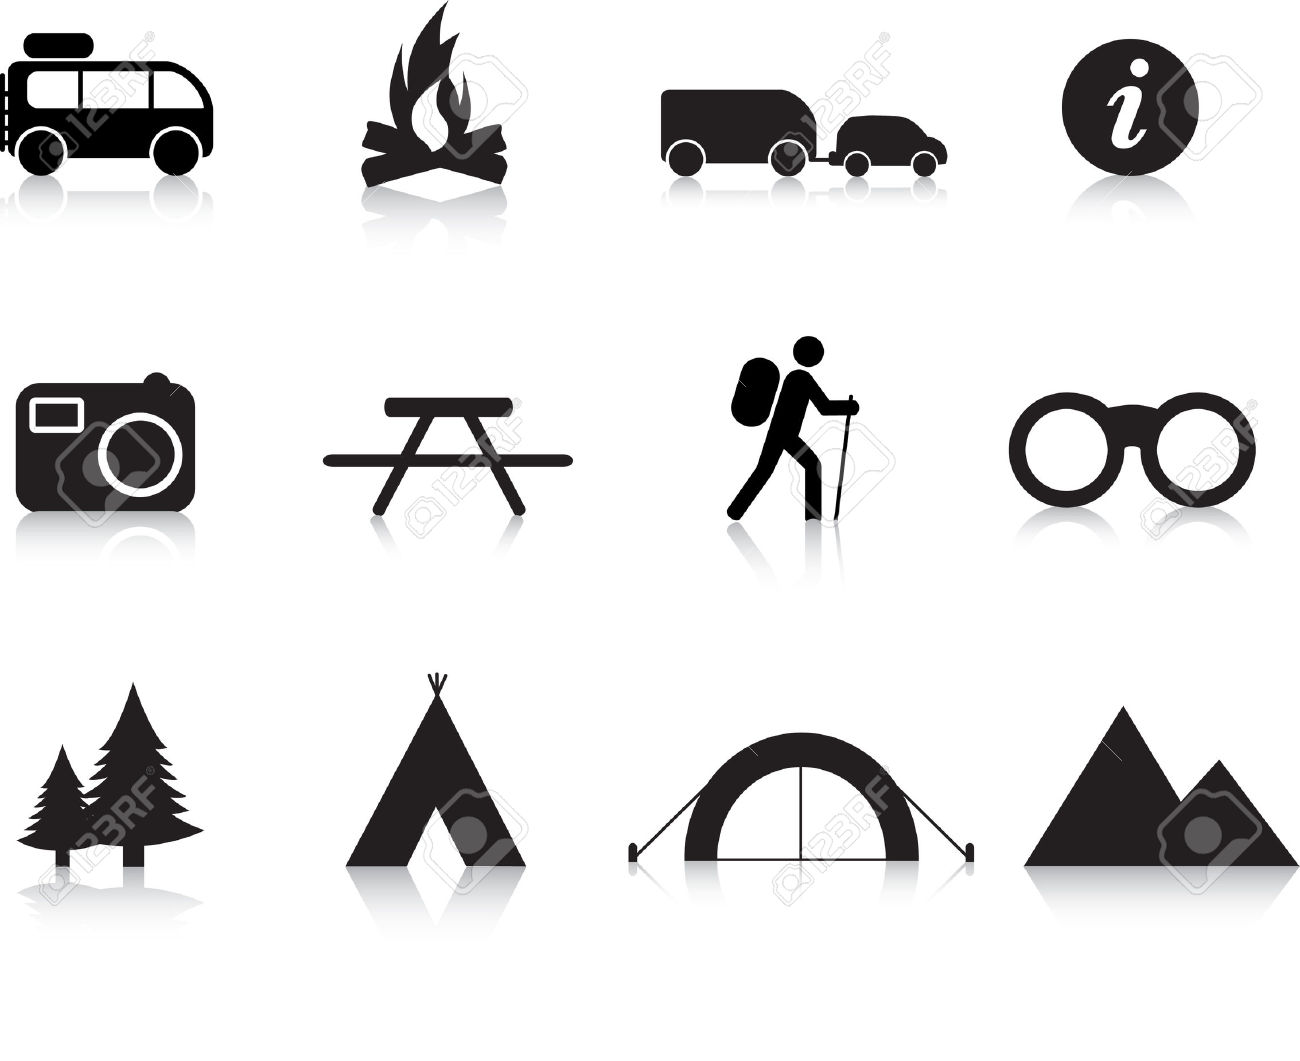 Camping And Outdoor Simple Silhouette Illustration Set Royalty.